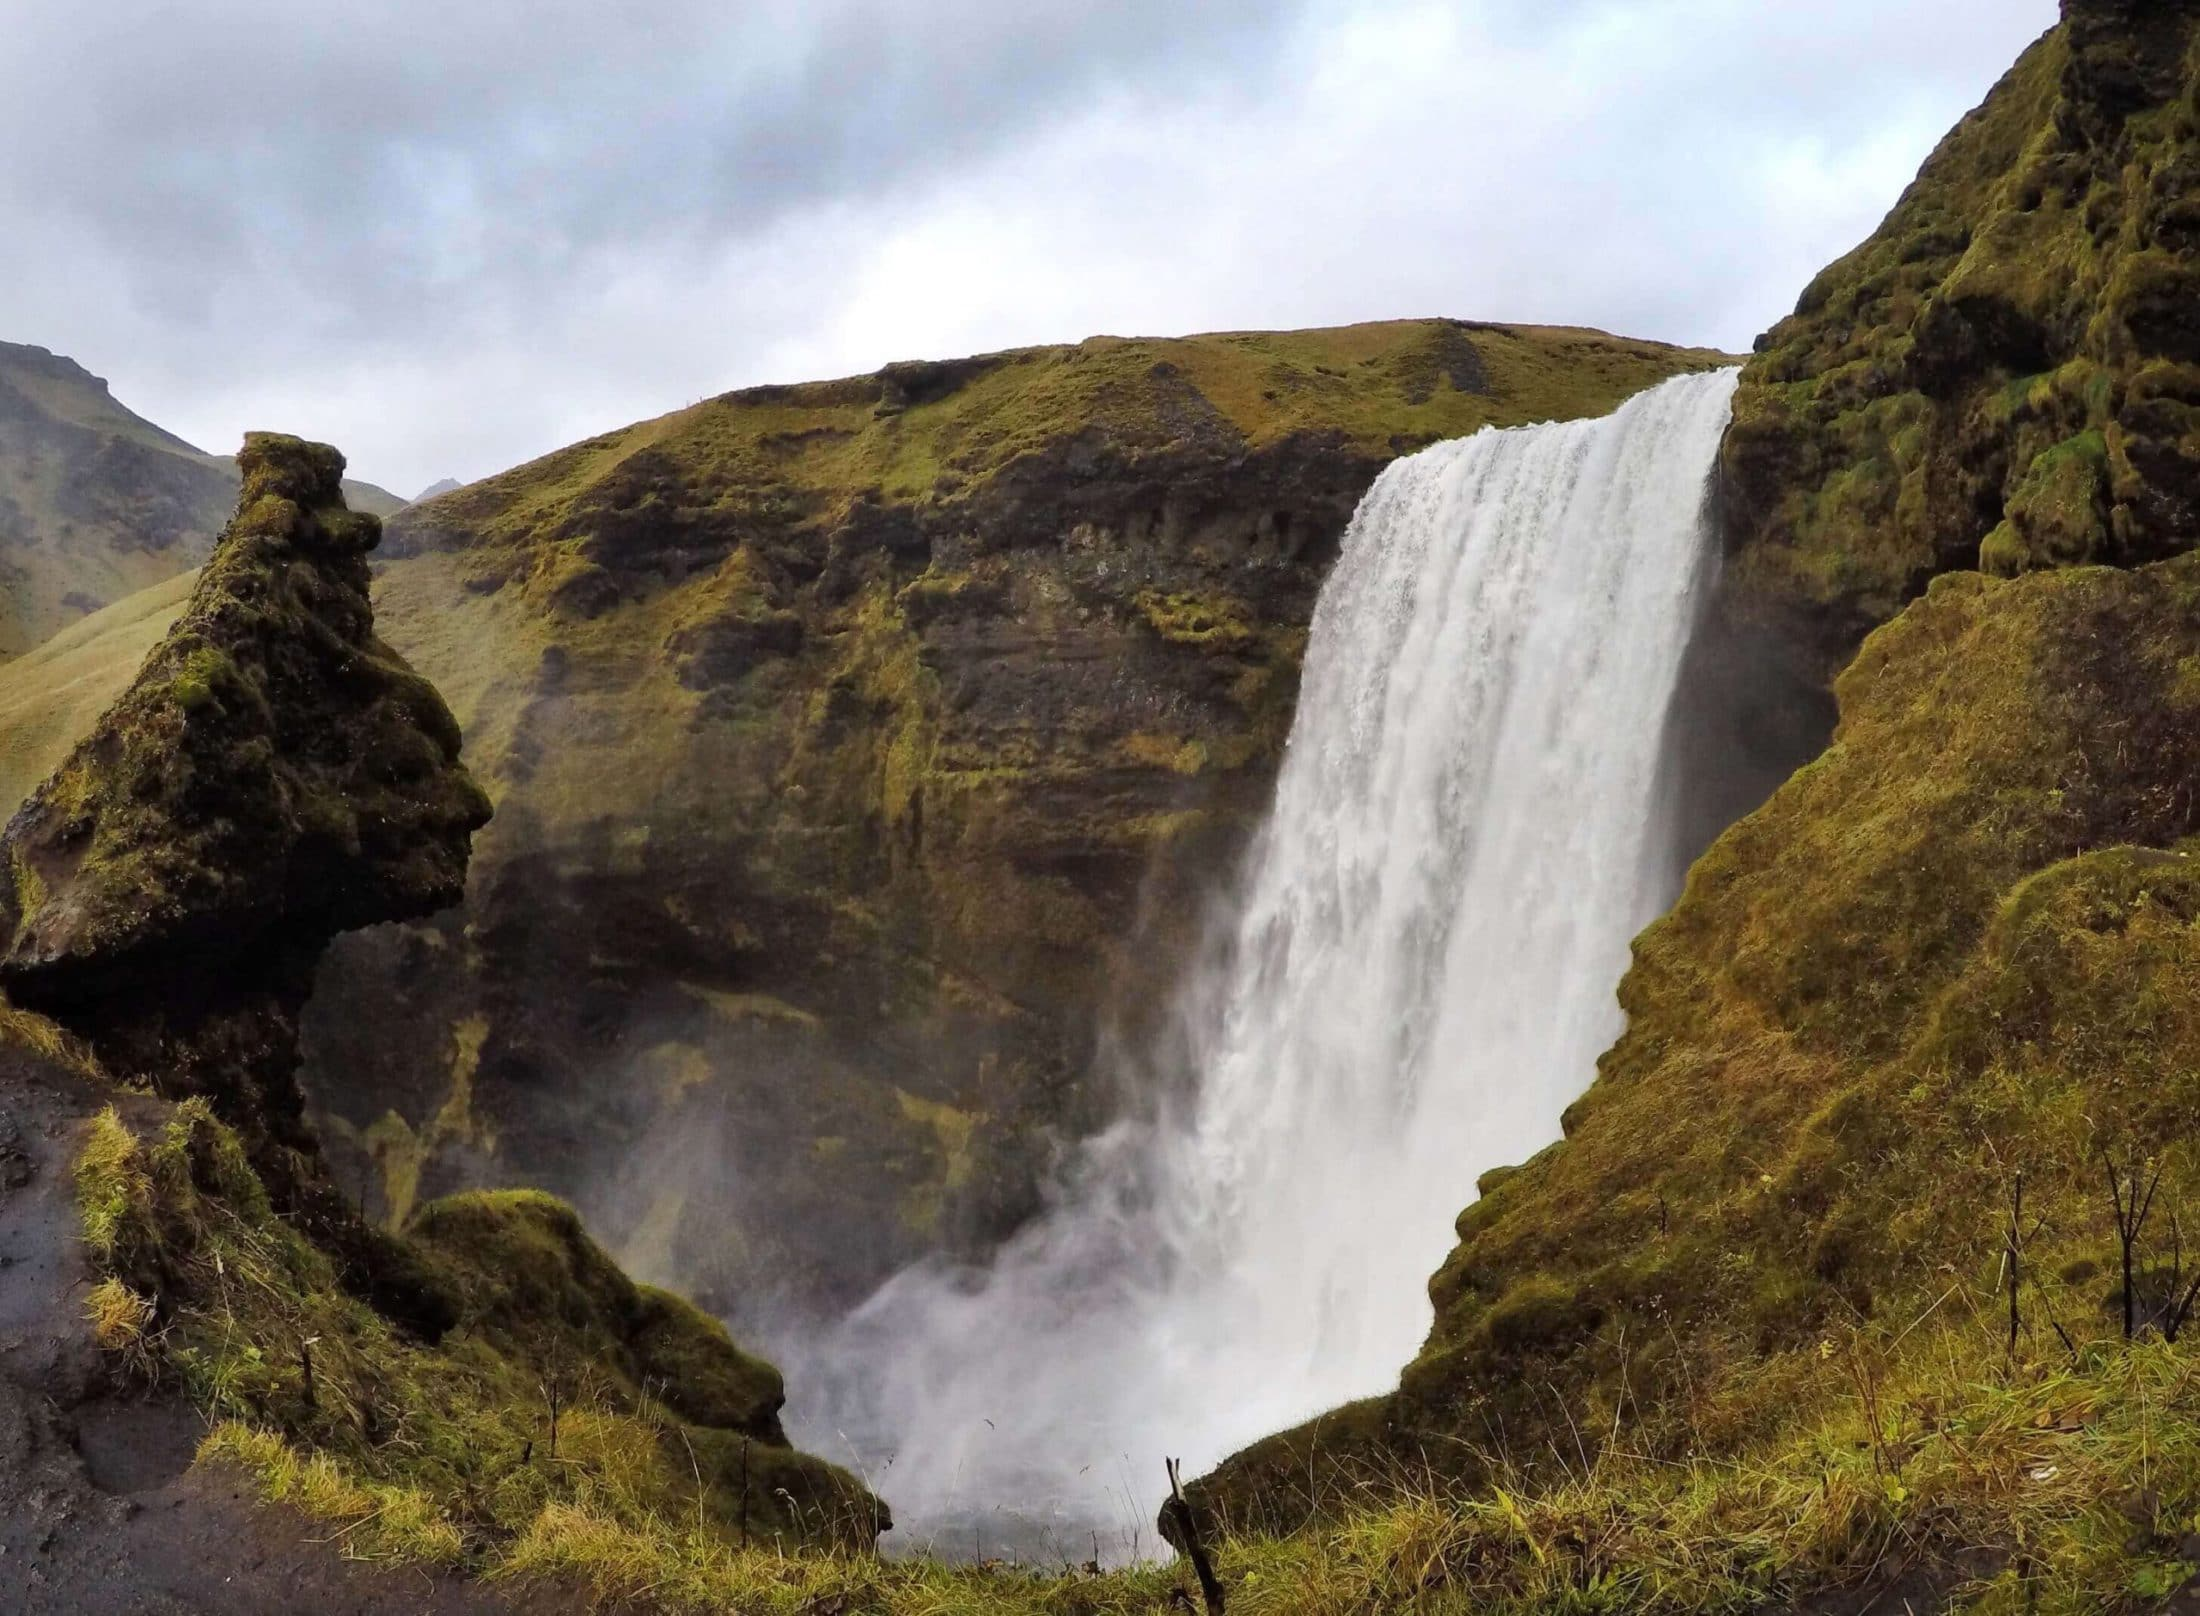 Hiking to the top of Skogafoss, Iceland south coast